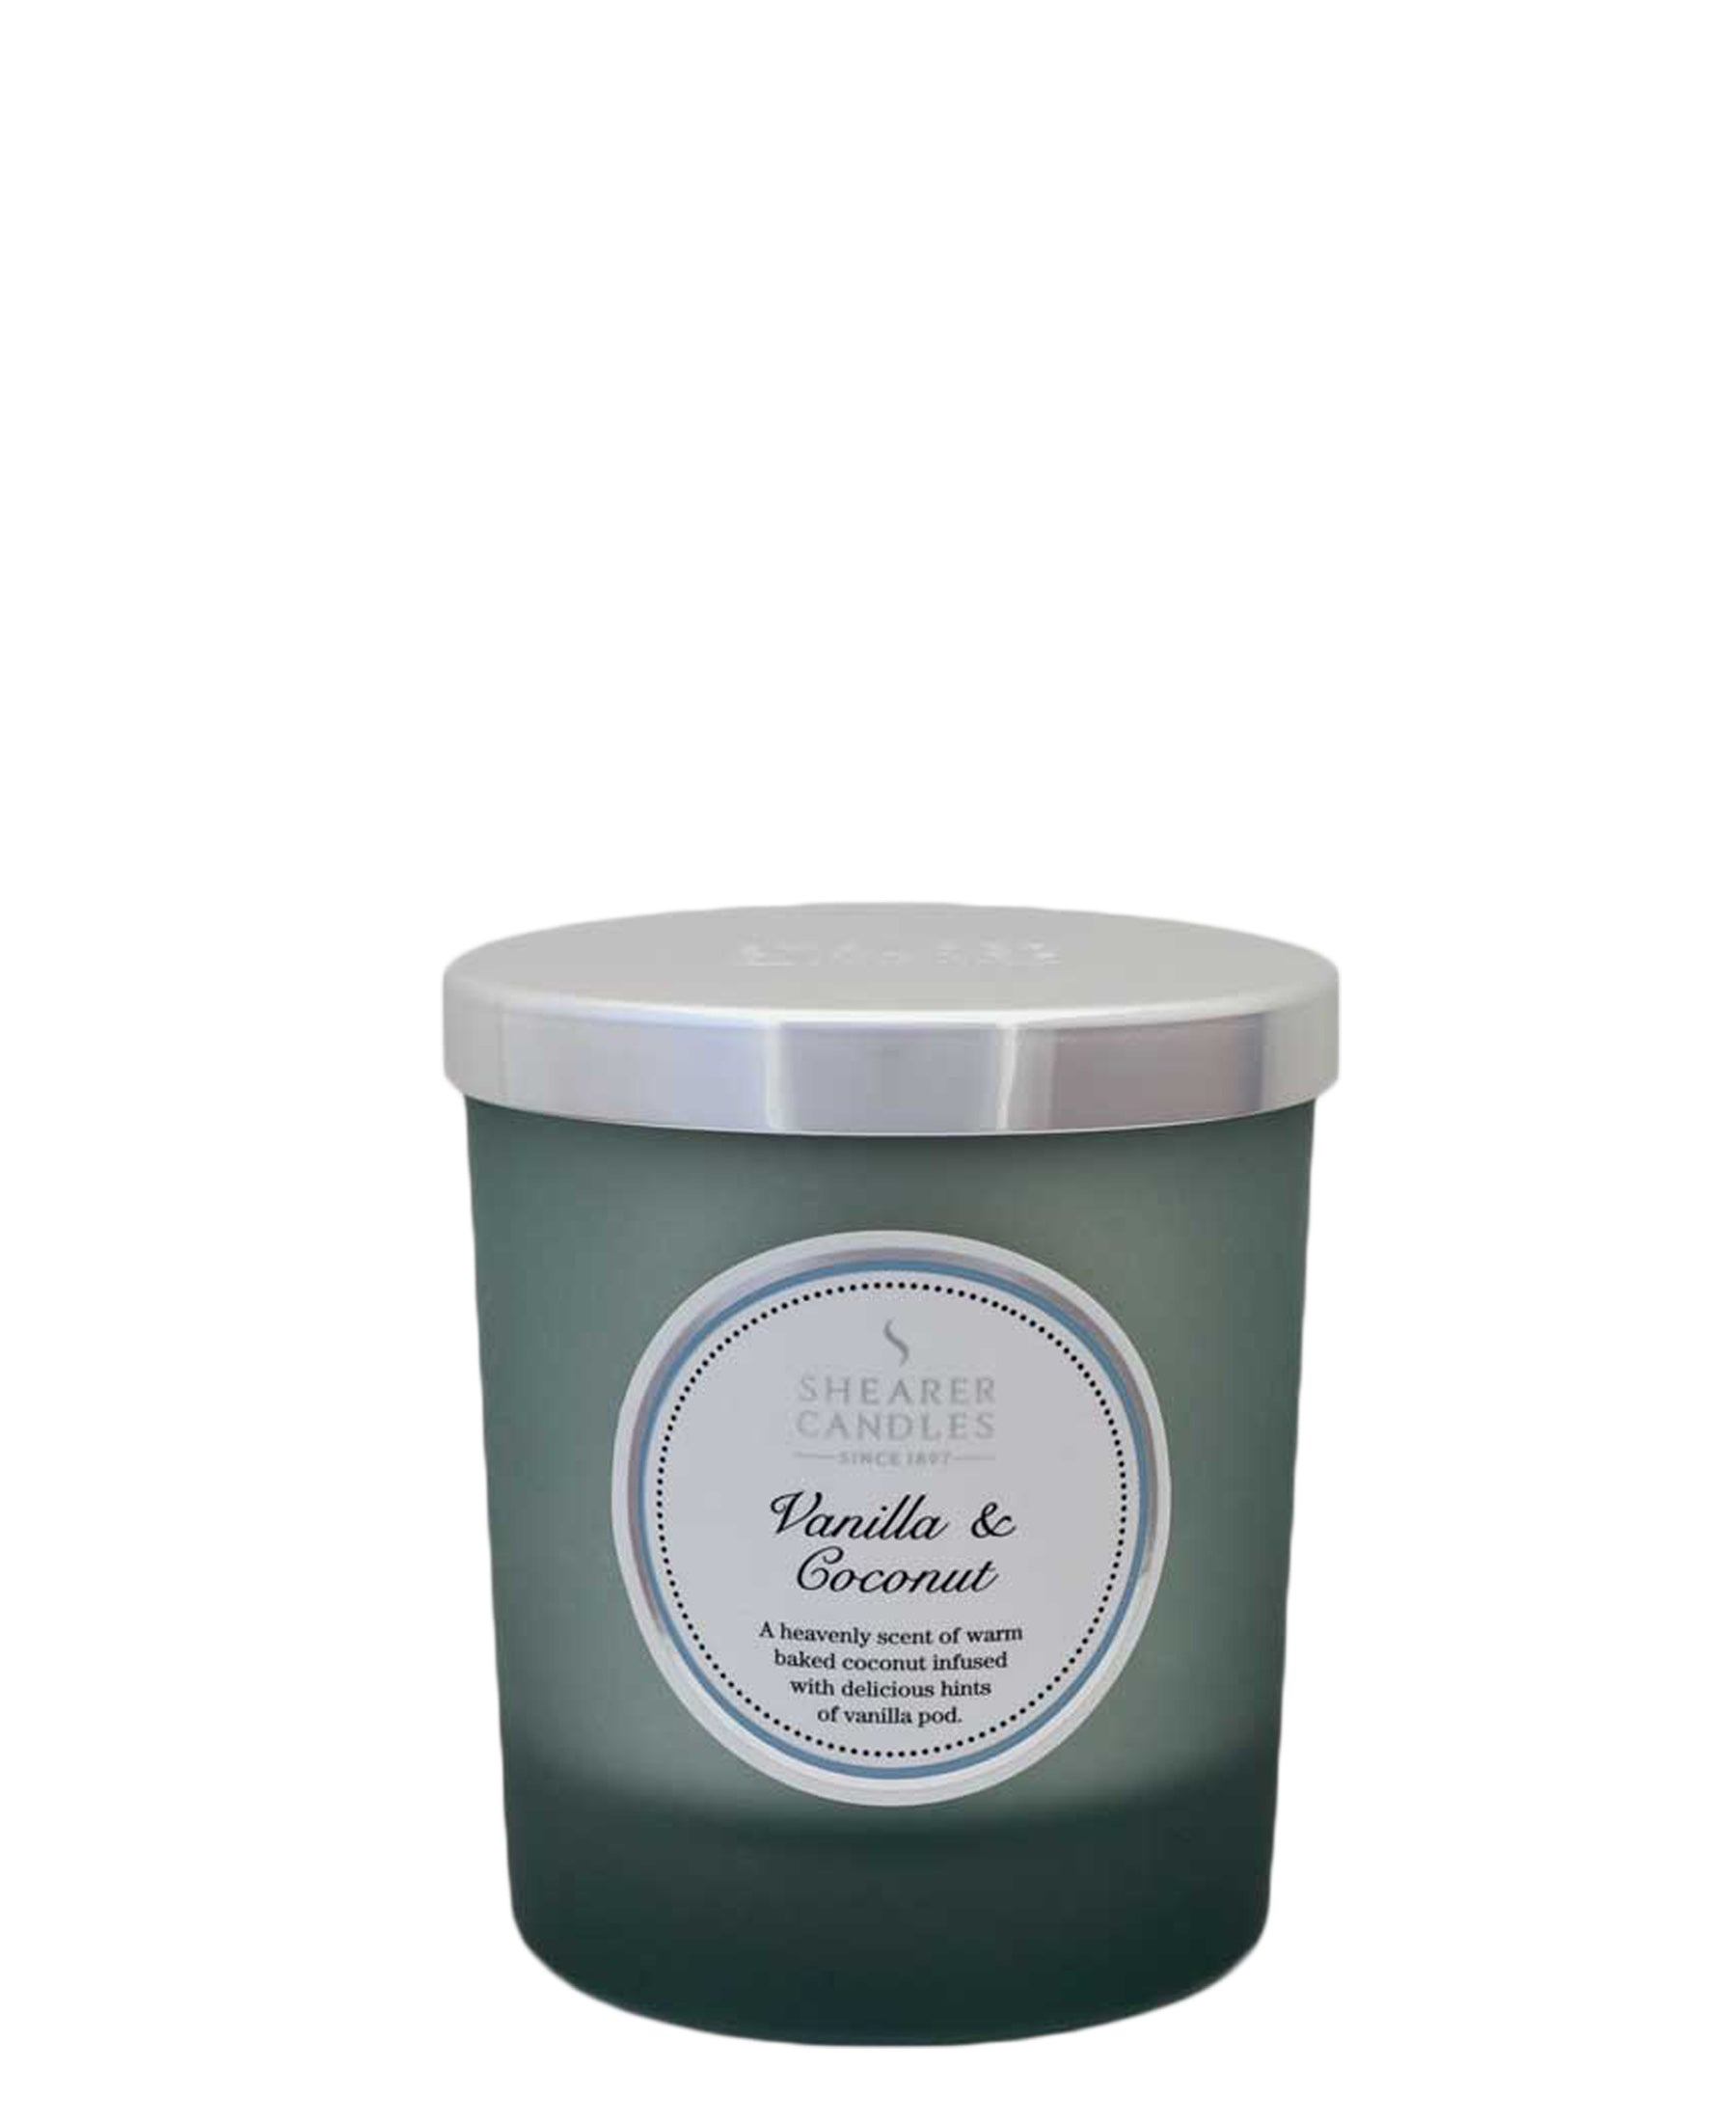 Shearer Candles Vanilla & Coconut Small Jar